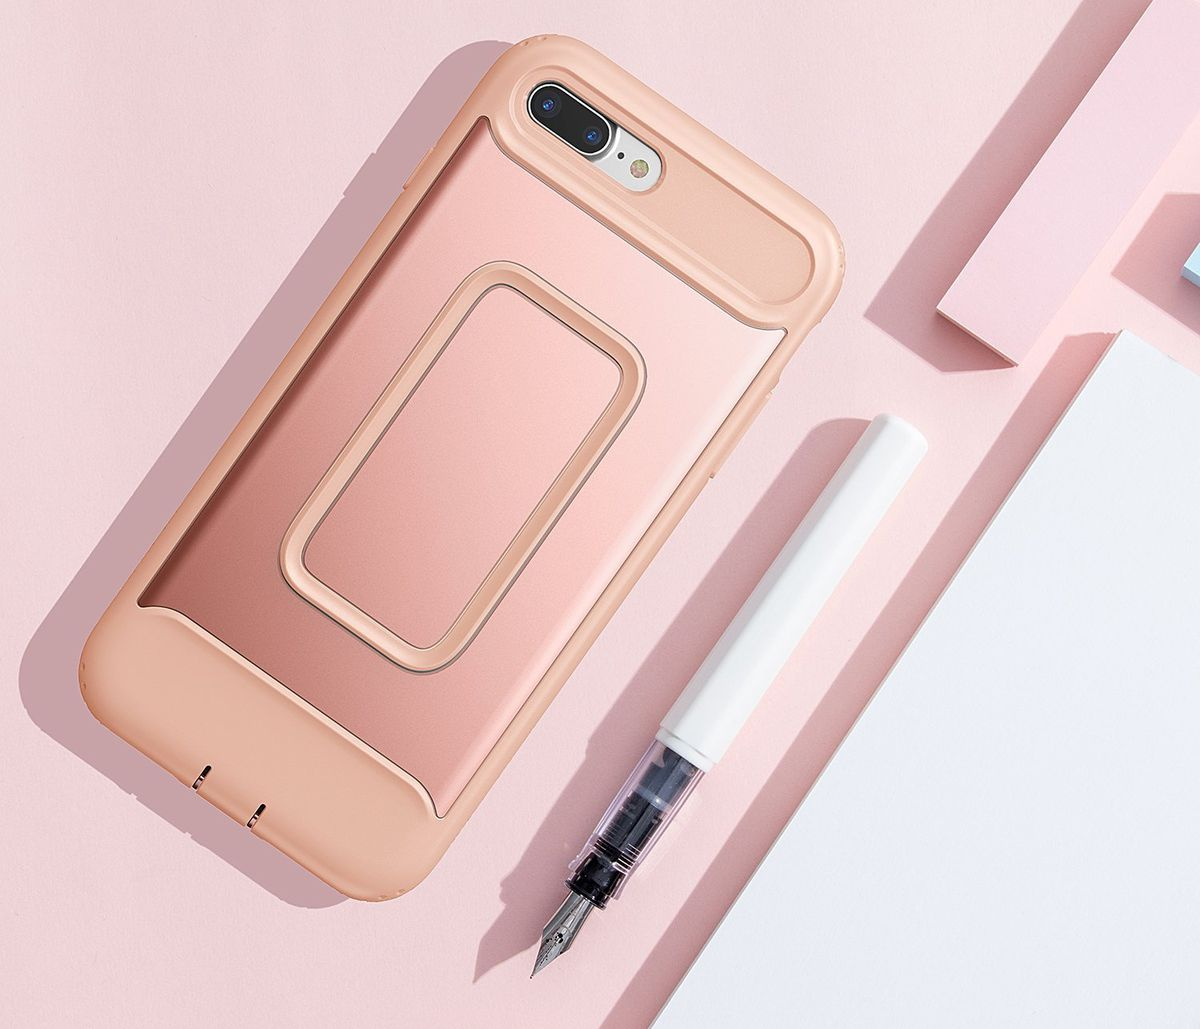 ae6bf09c58 Best iPhone 8 Plus cases, according to customer reviews